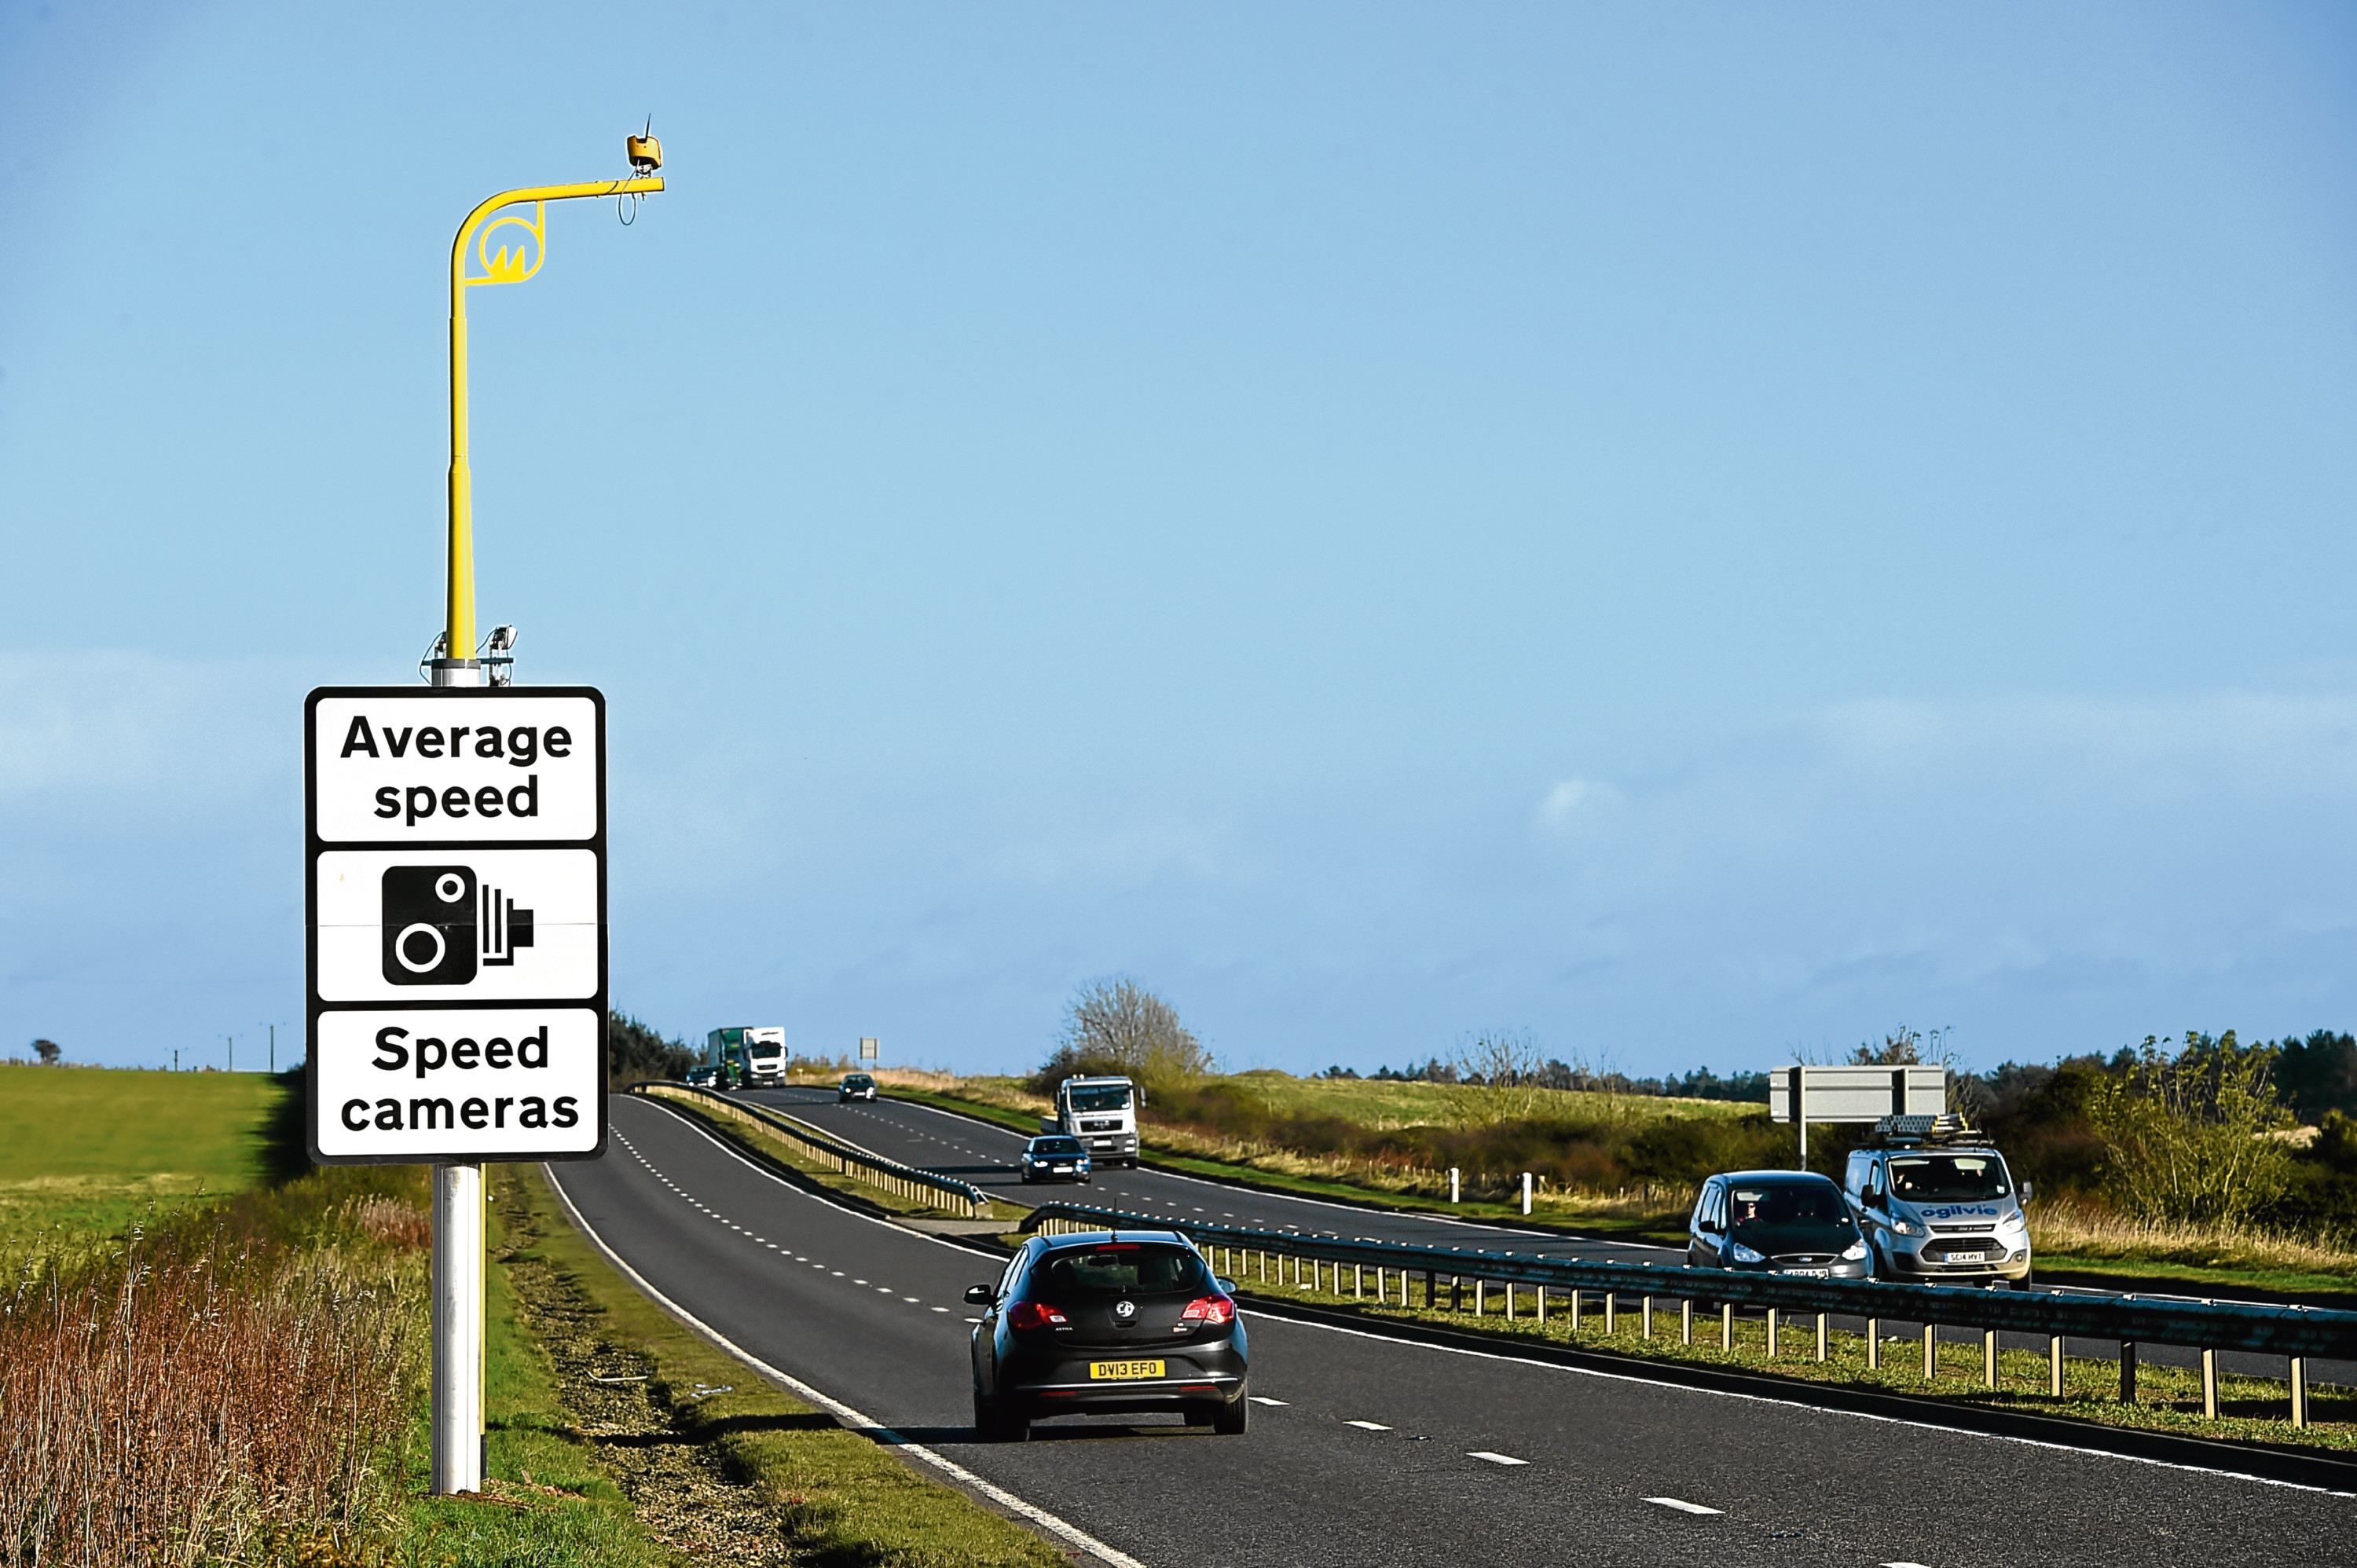 Average speed cameras on the A90 between Stonehaven and Dundee.